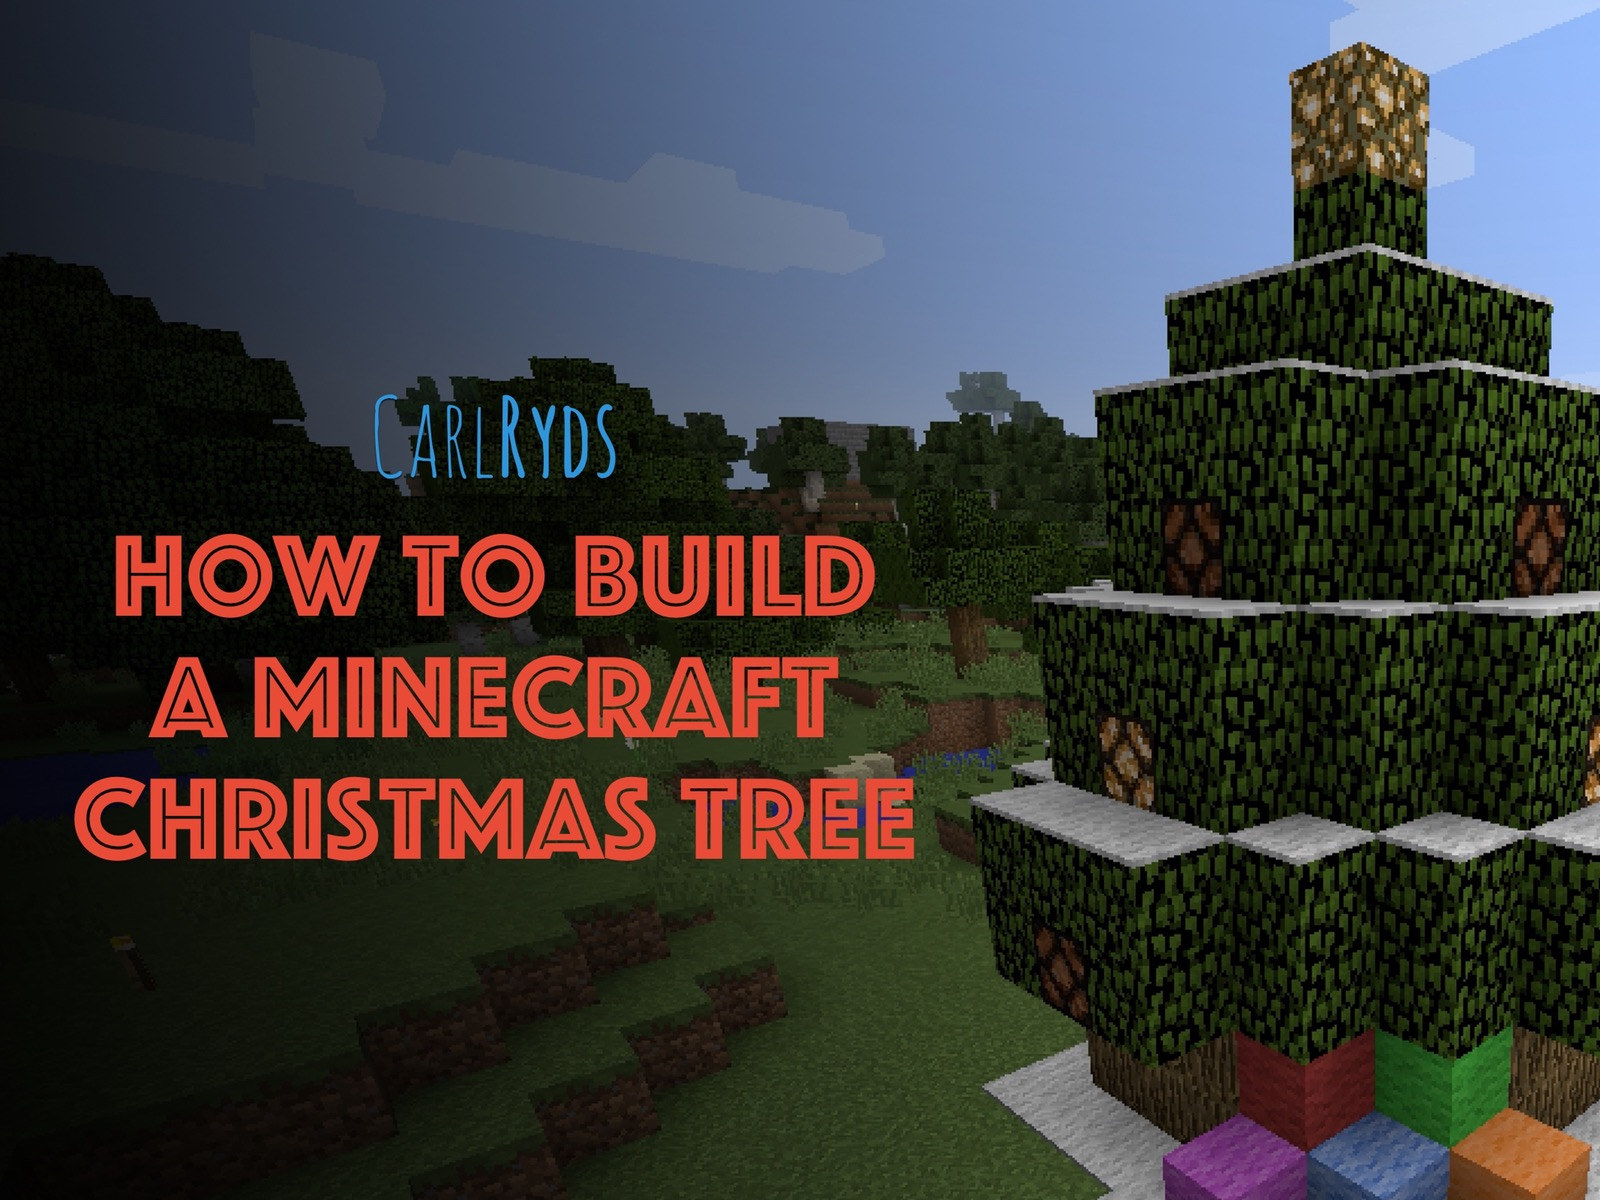 How To Build a Minecraft Christmas Tree